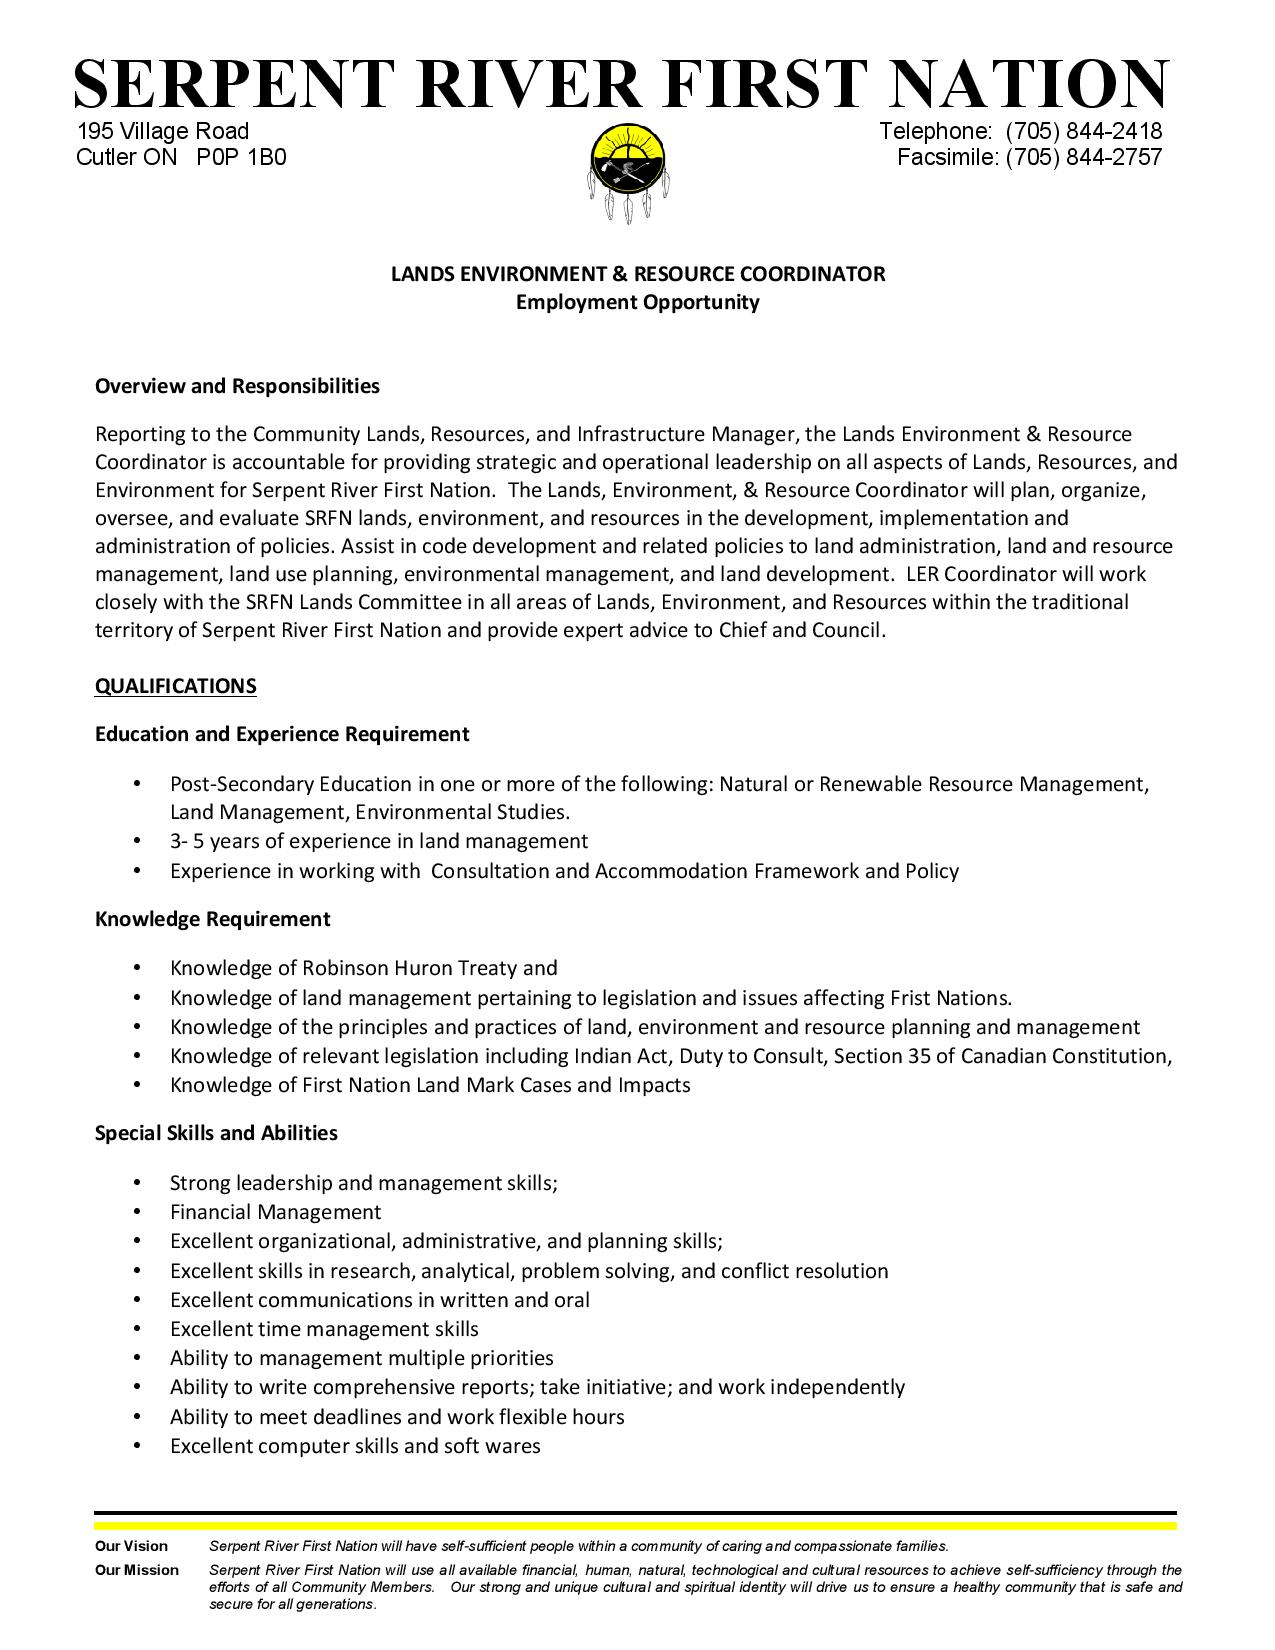 2018-07-09 Lands and Environment Resource Coordinator-page-001.jpg